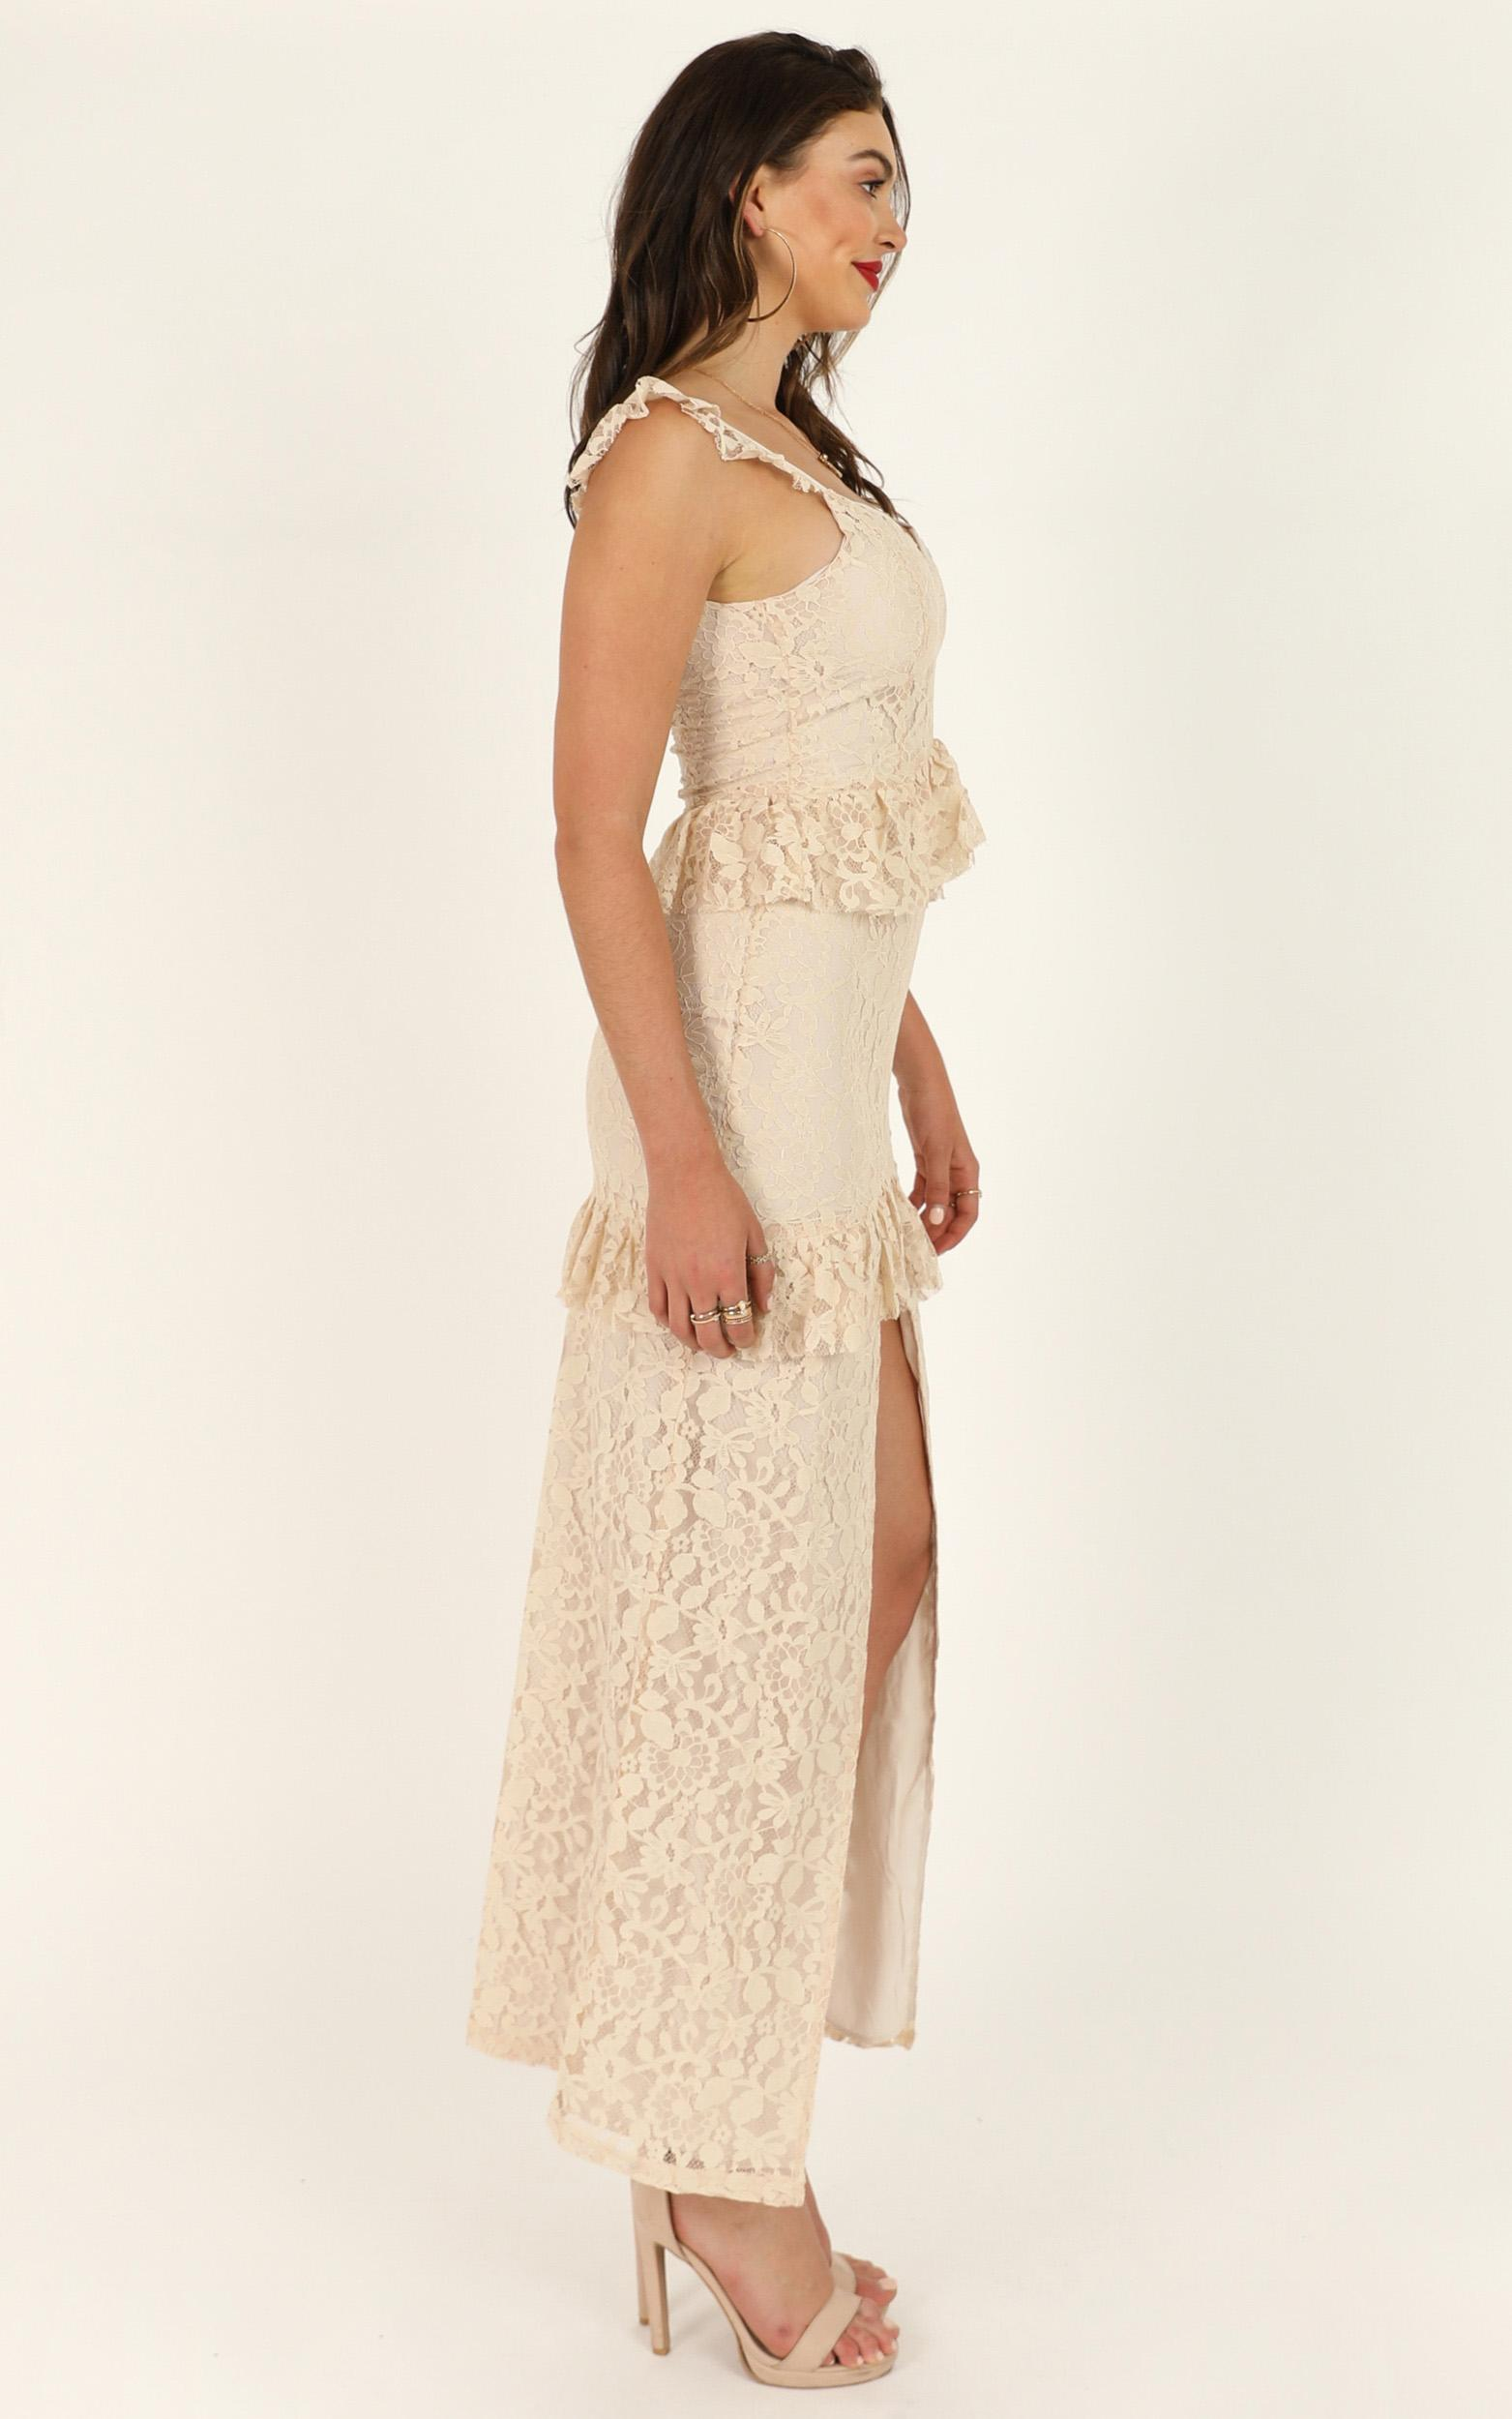 Waiting Forever maxi dress in cream lace - 12 (L), Cream, hi-res image number null